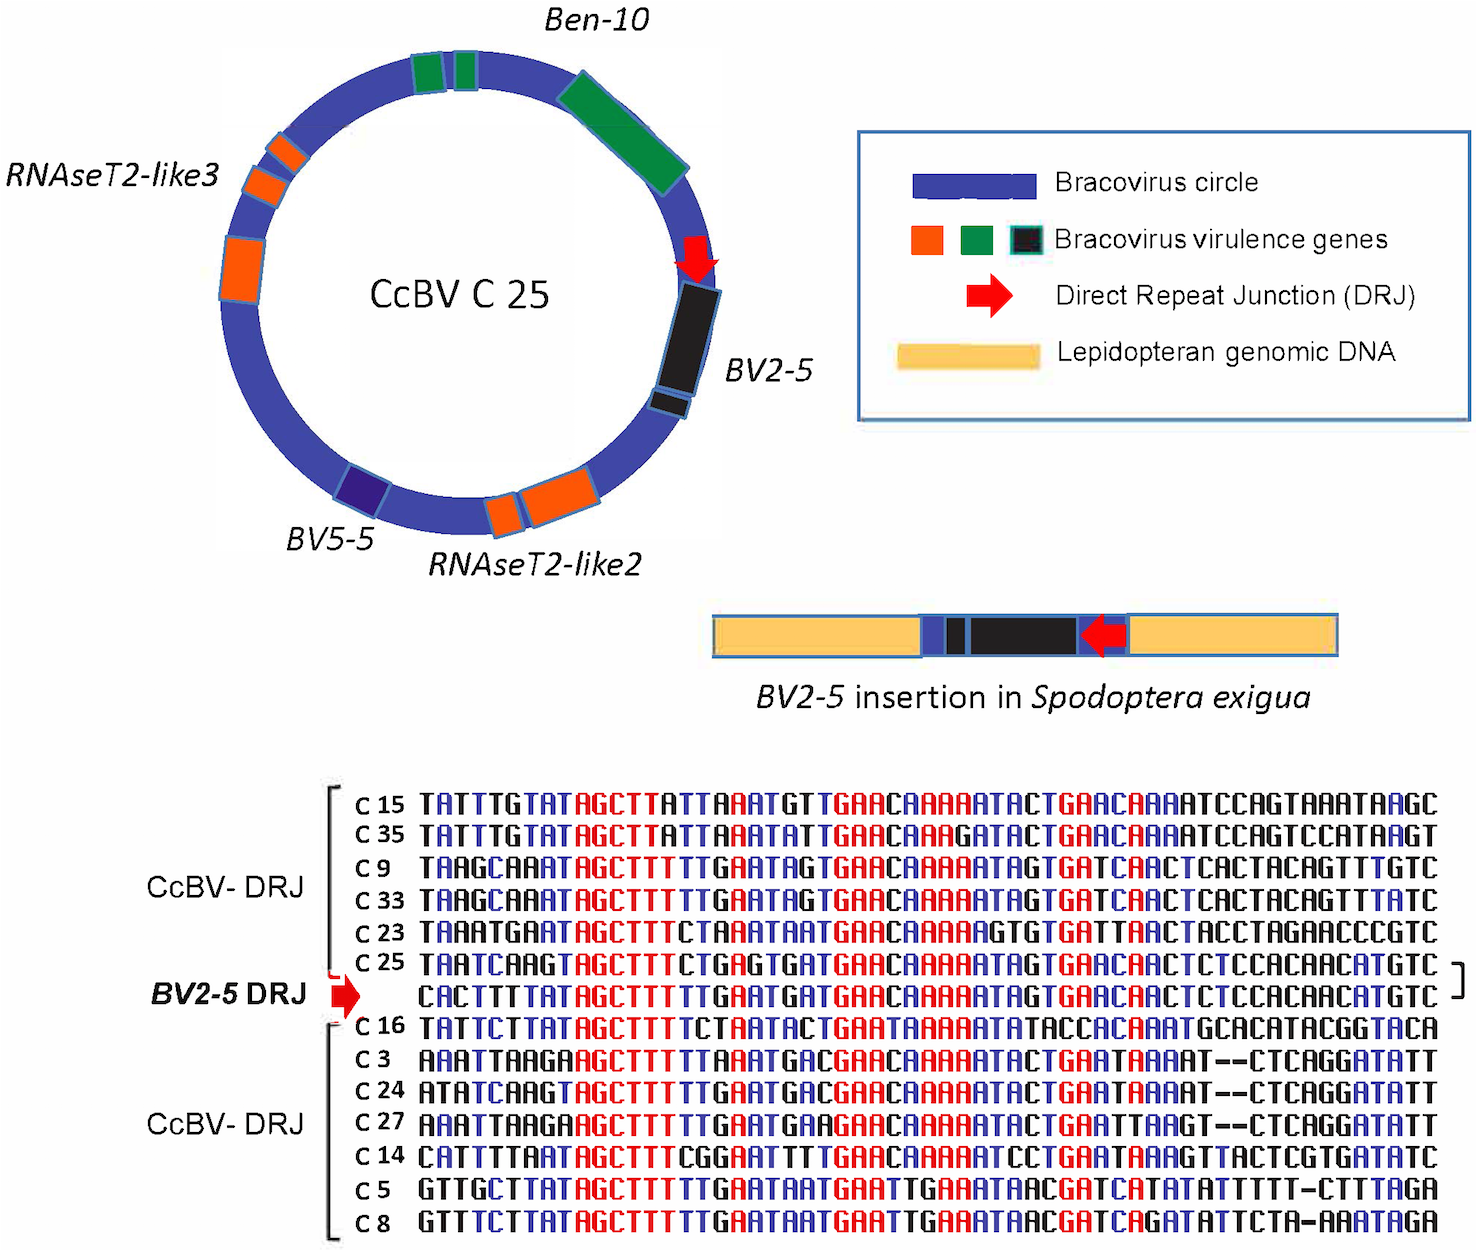 Regulatory sequence involved in bracovirus circle production retained in a bracovirus insertion in <i>Spodoptera exigua</i> genome.